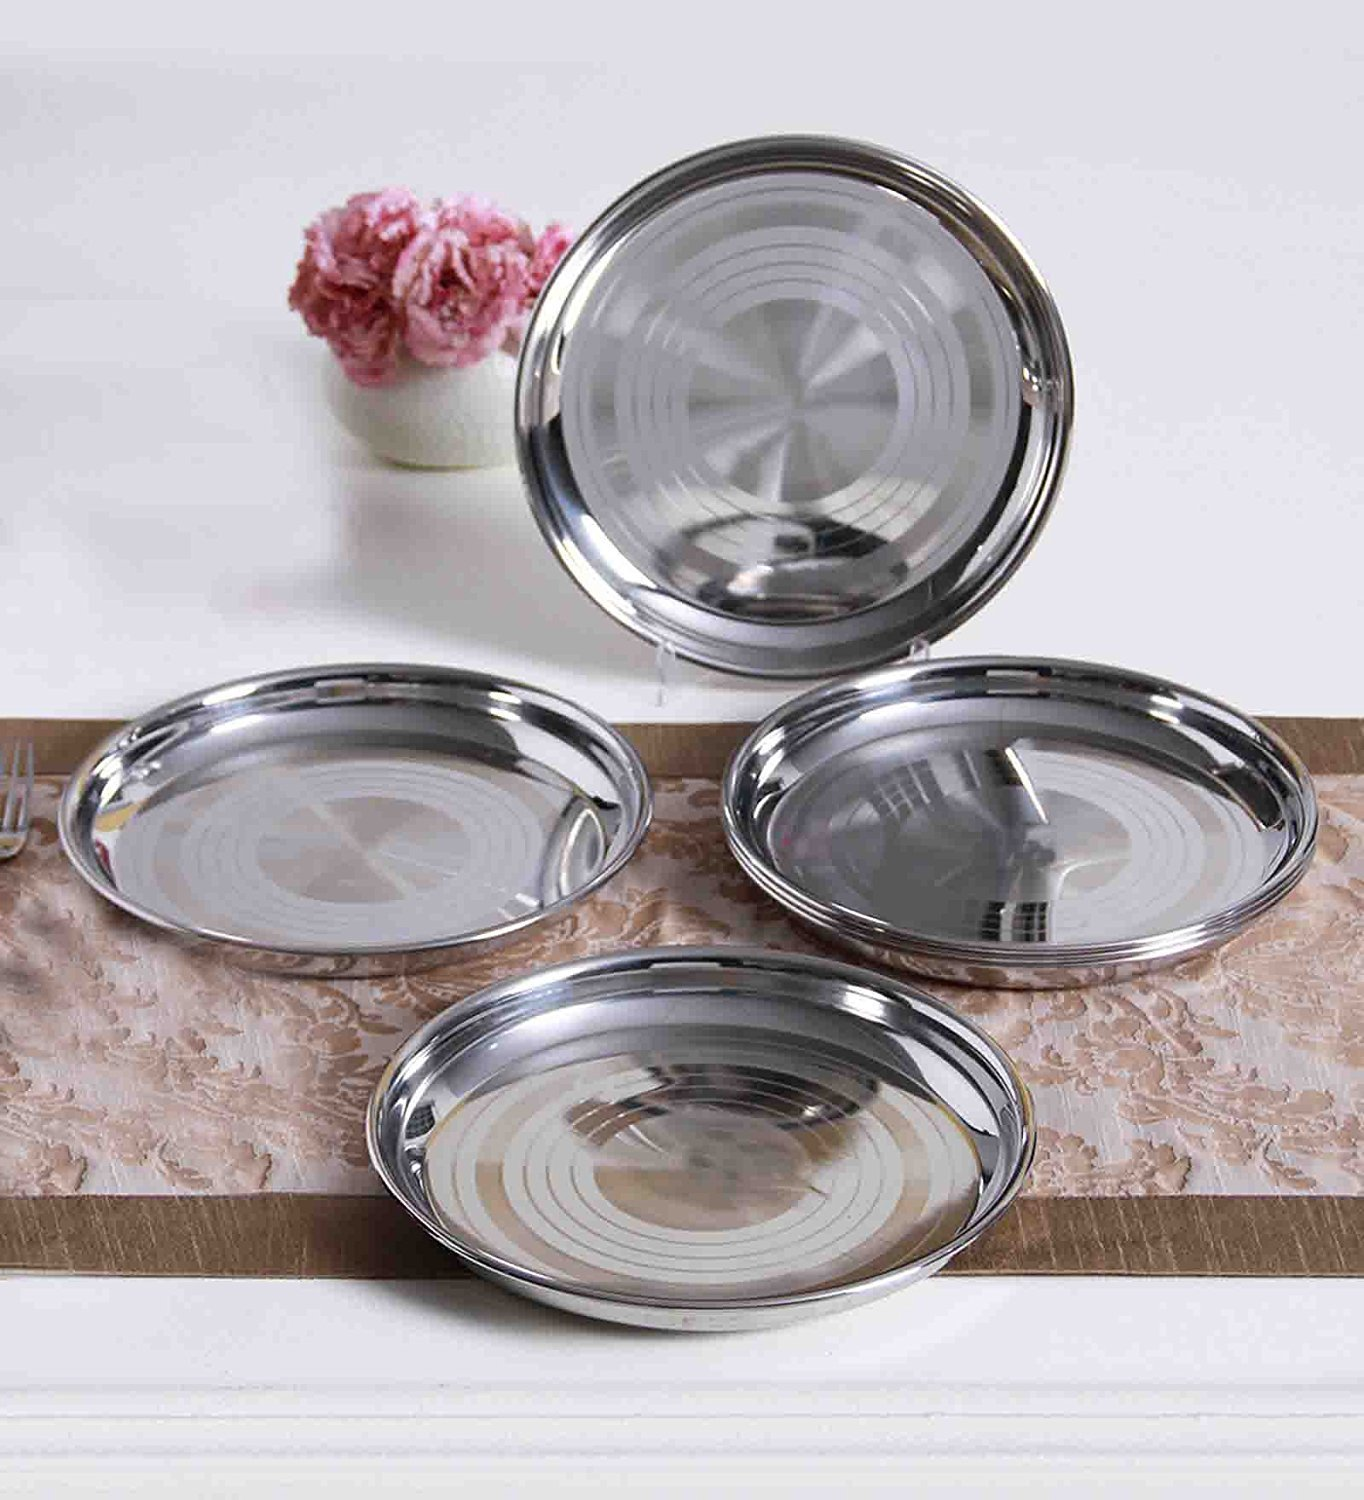 Mess Trays Great for Camping WhopperIndia Stainless Steel Quarter Pate Dinner Plate 10 Inch